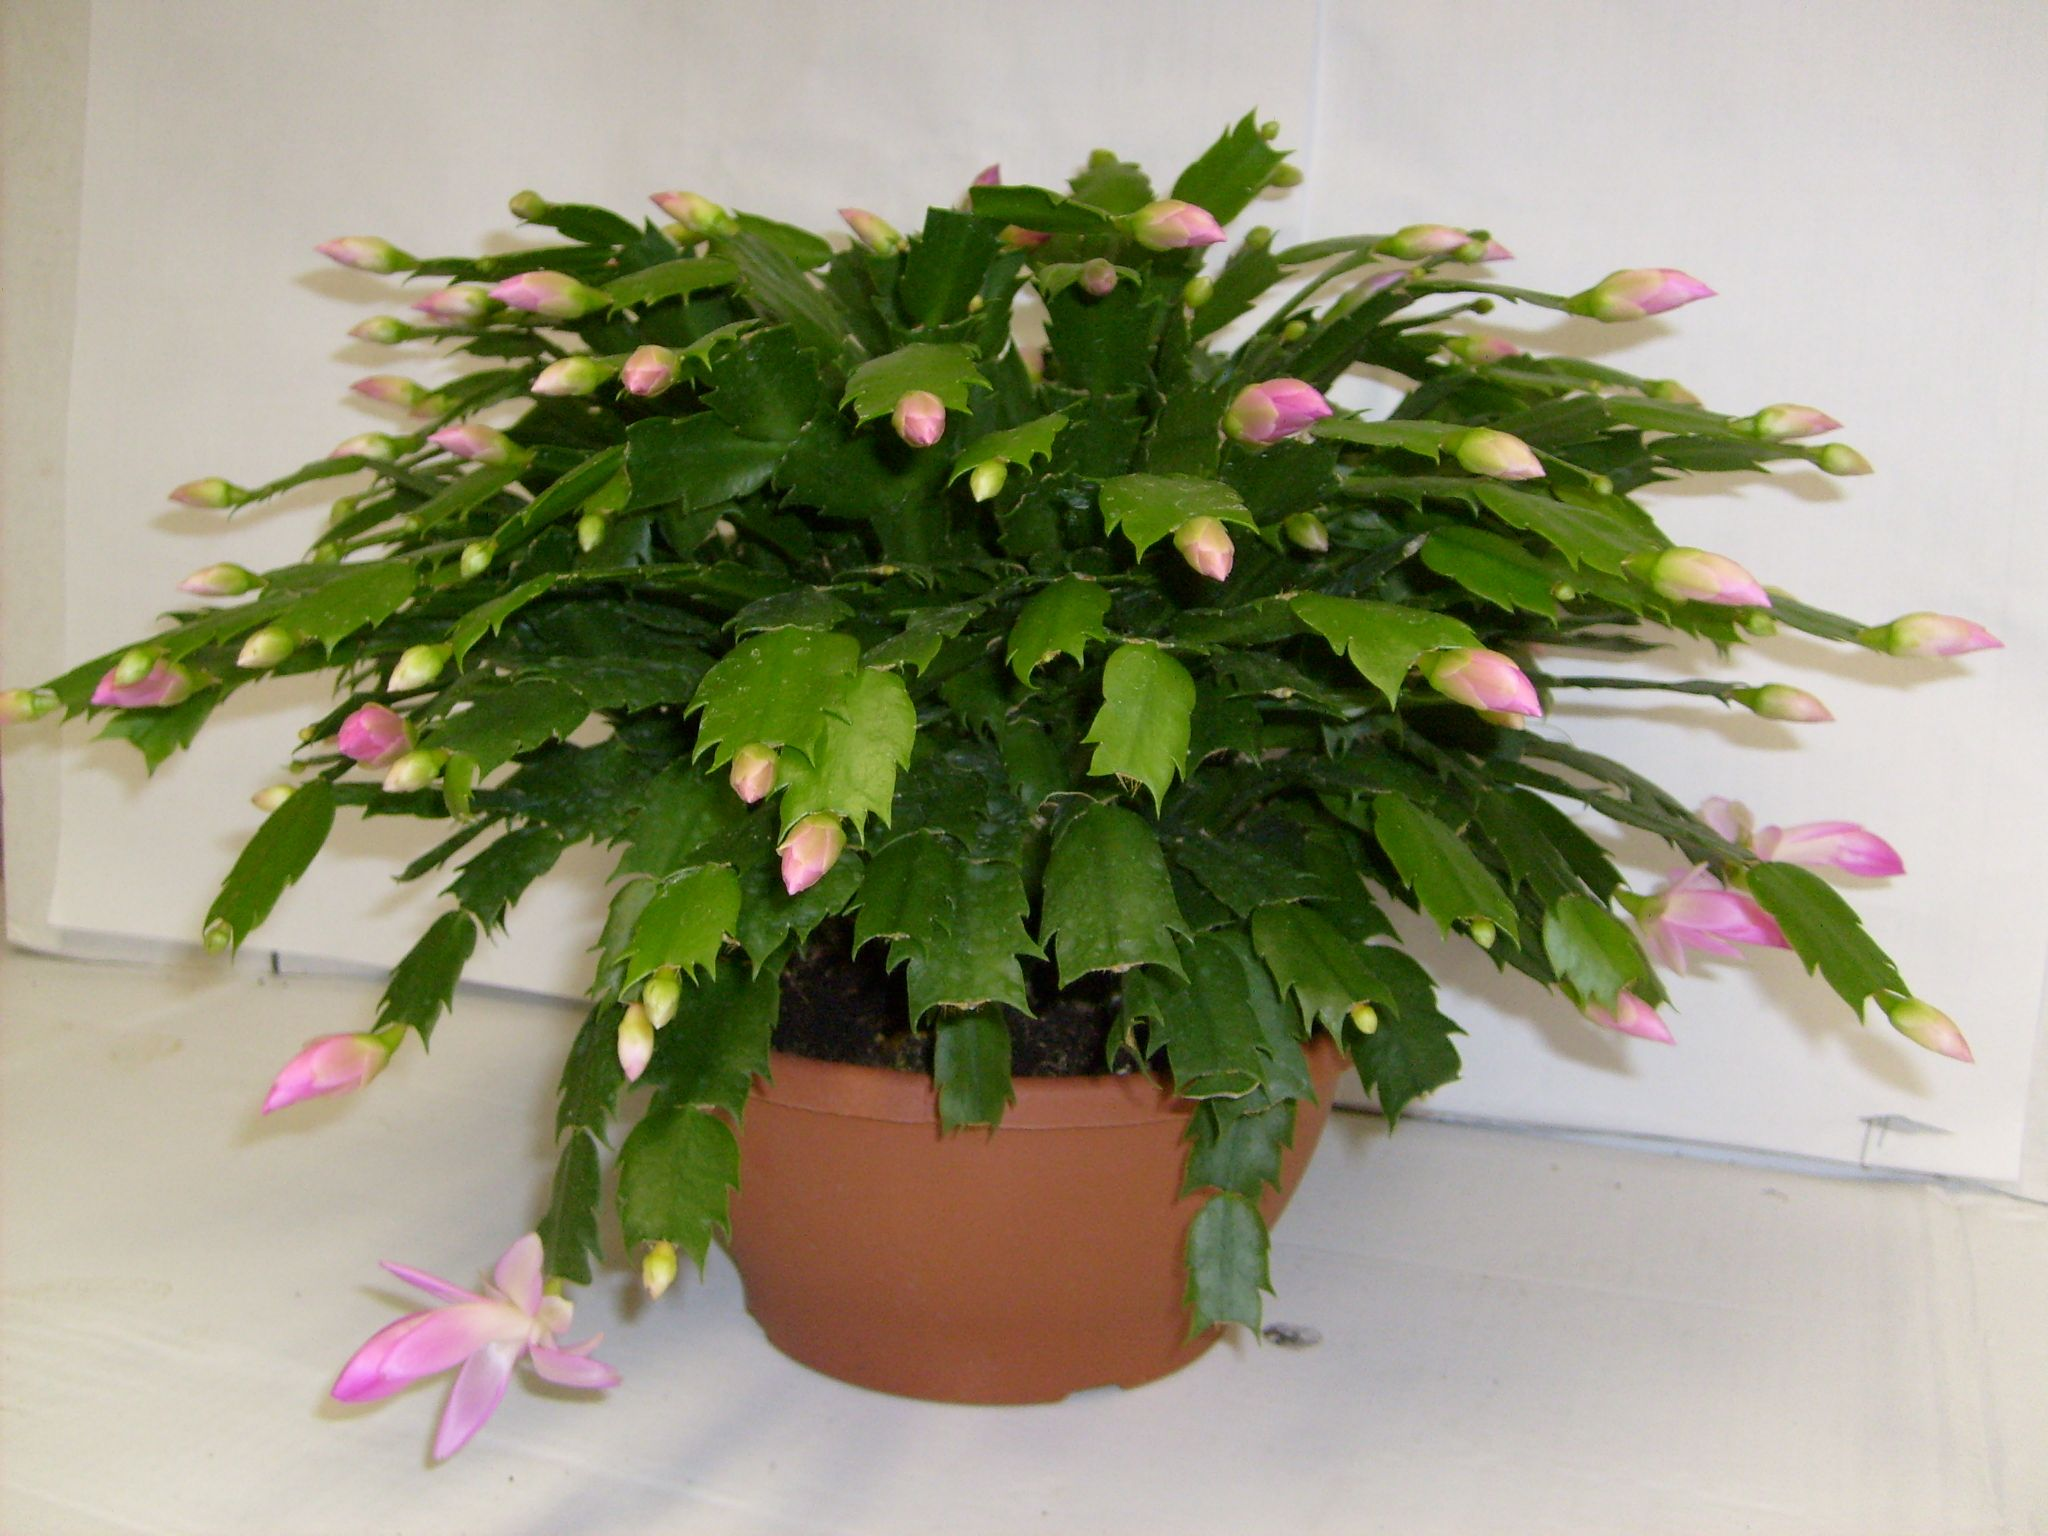 Take stem cuttings from your Christmas Cactus Plant now